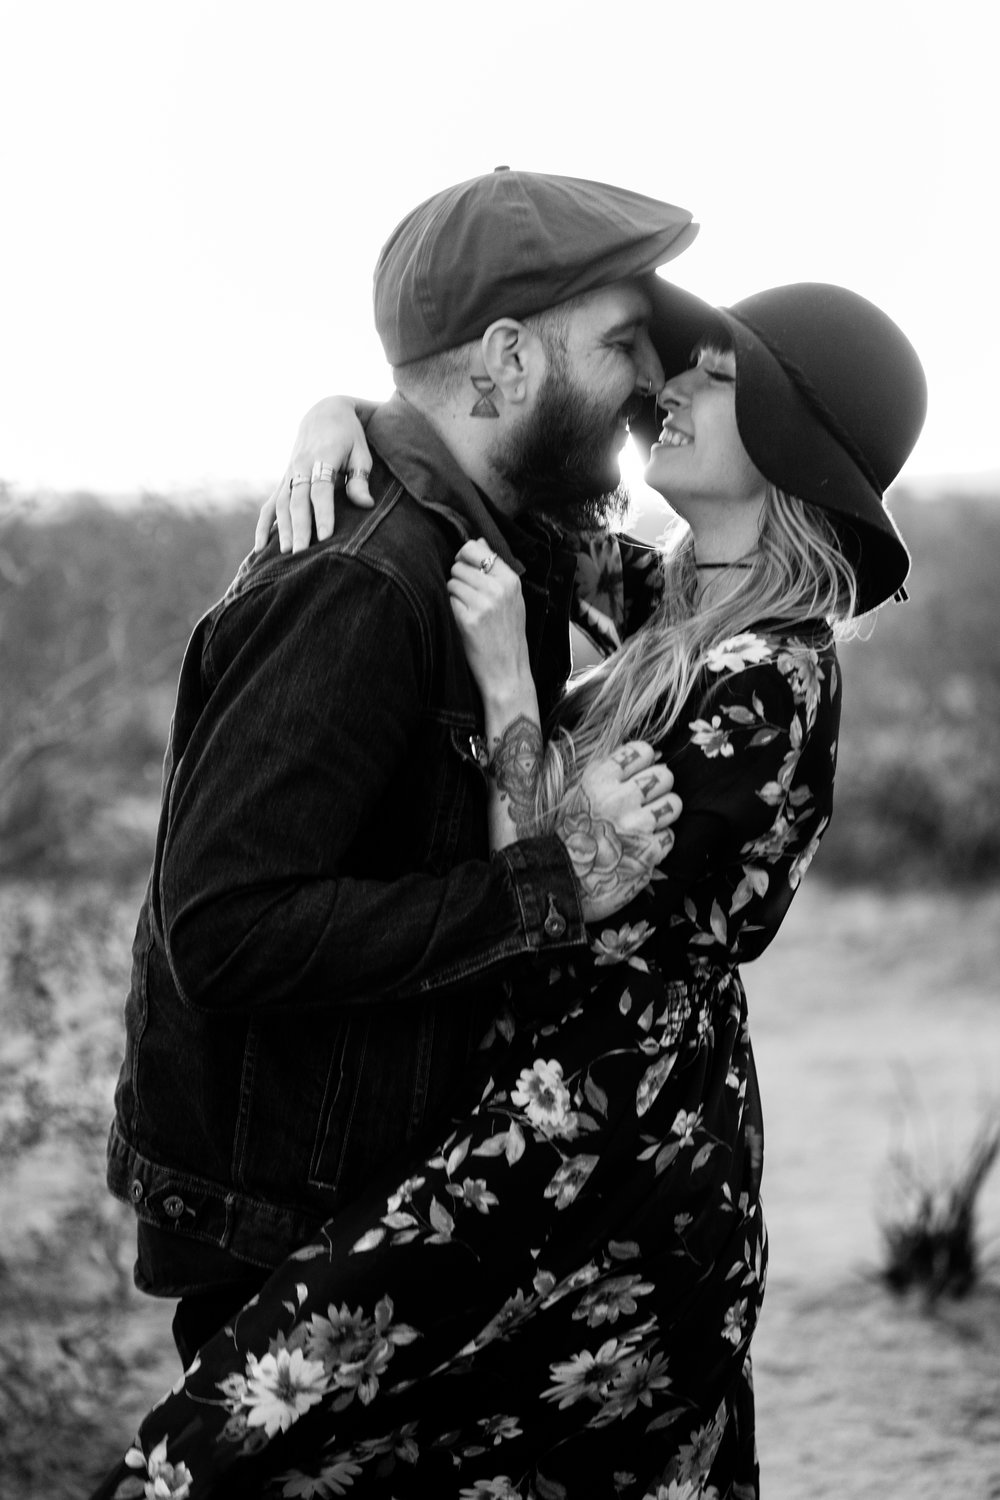 nicole-daacke-photography-joshua-tree-cactus-garden-engagement-photos-joshua-tree-national-park-enegagement-session-edgy-hipster-california-cholla-garden-golden-sunset-session-77.jpg